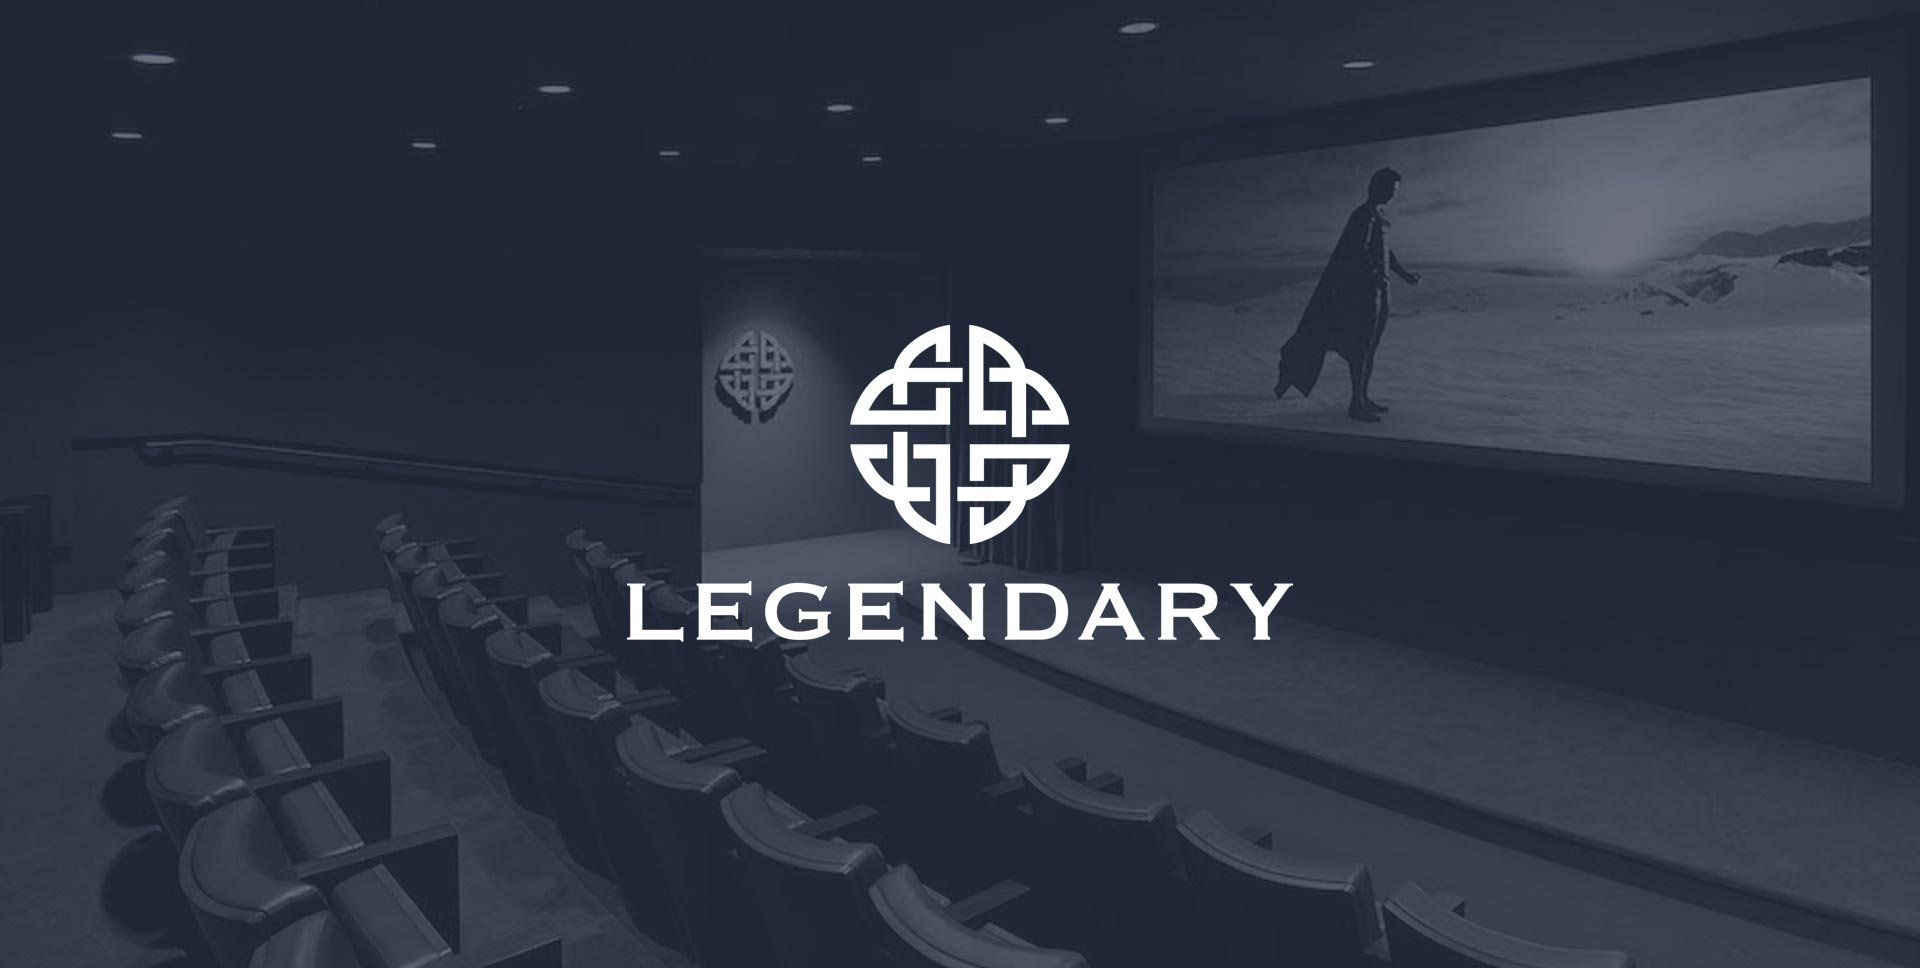 Legendary, the global media and entertainment company